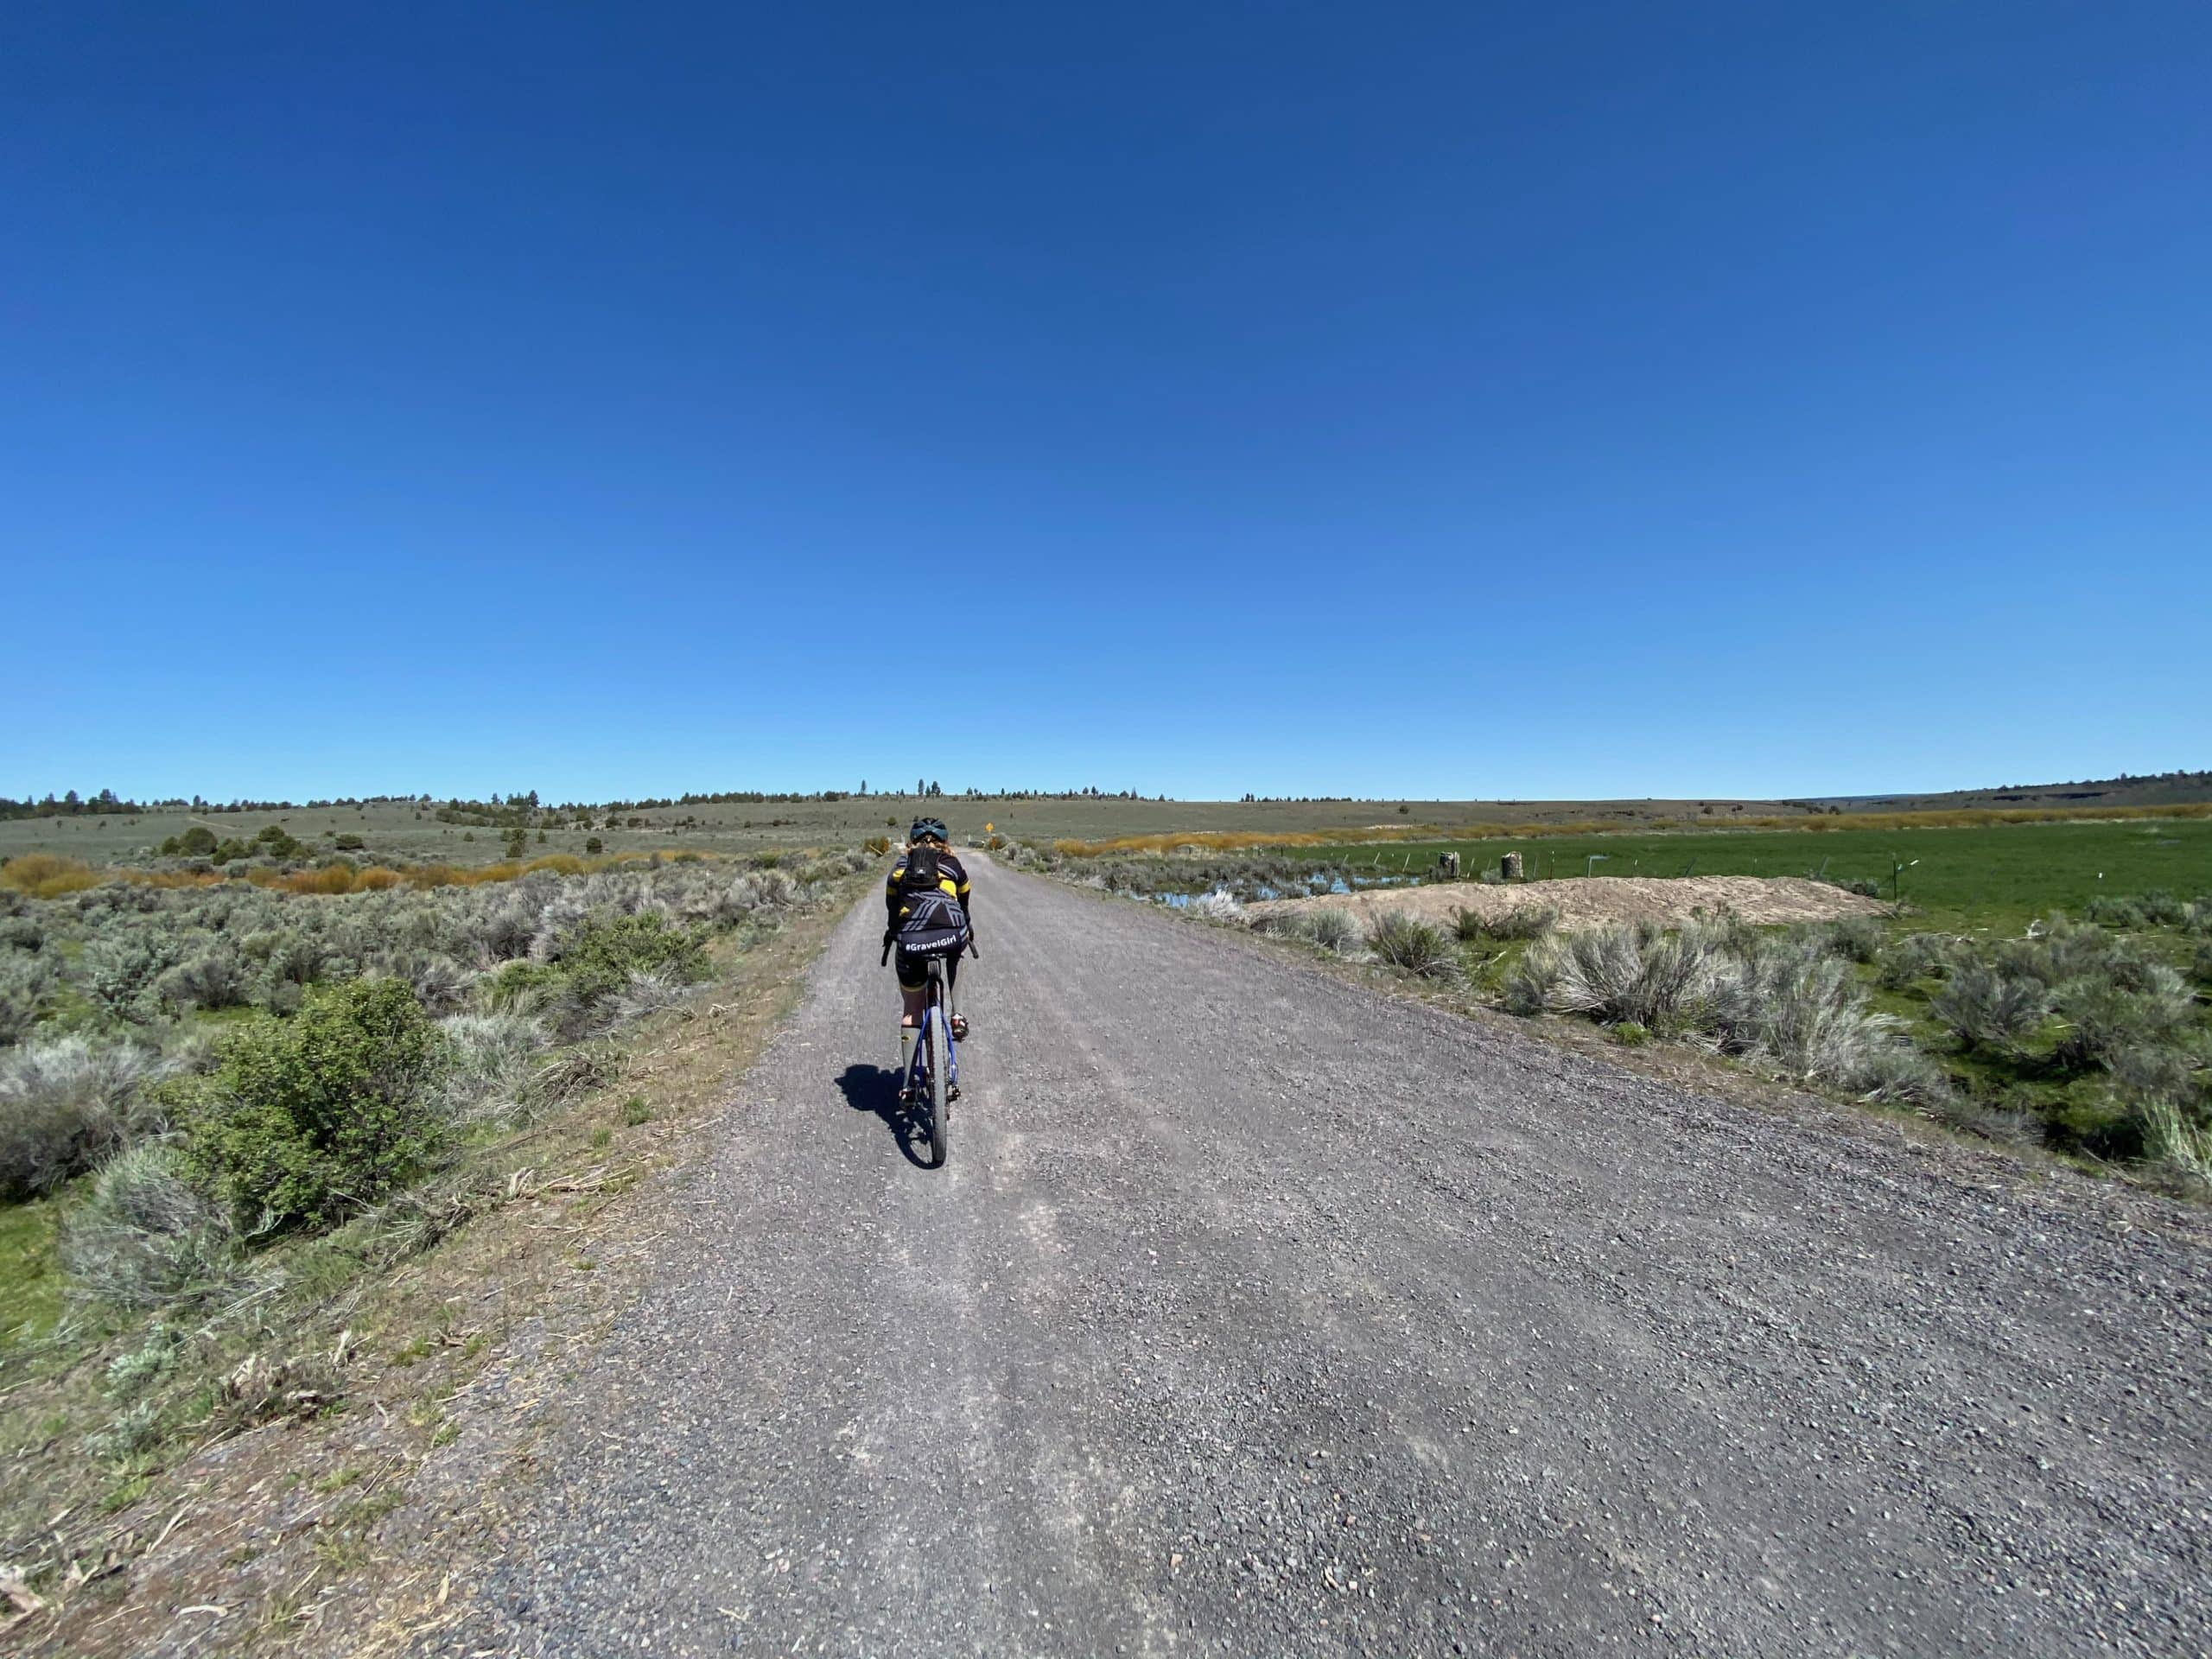 Gravel Girl on NF-45 leading out of Upper Valley near Riley, OR.